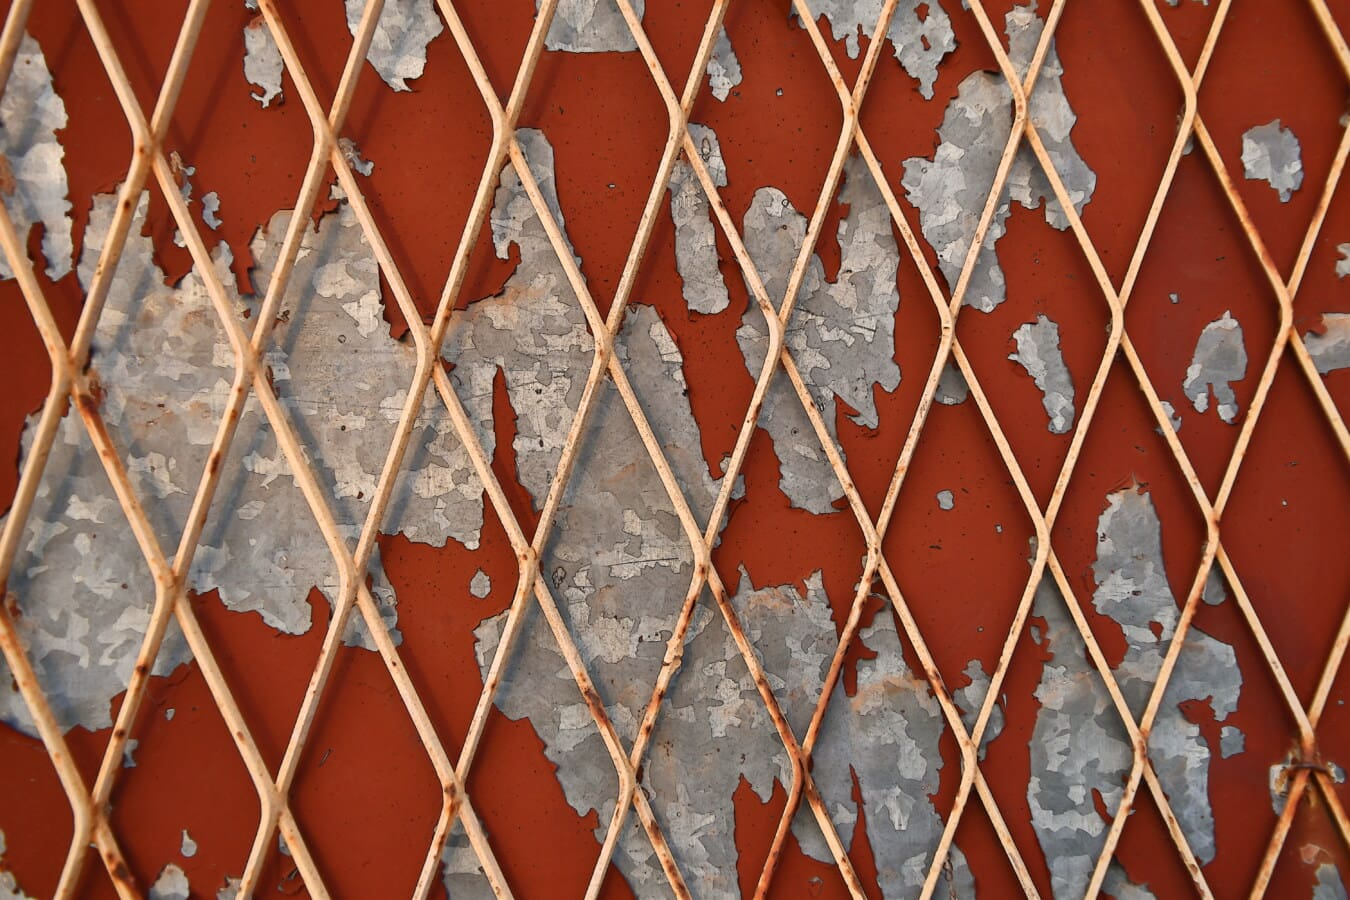 fence, wires, grid, rust, metal, paint, reddish, texture, pattern, old